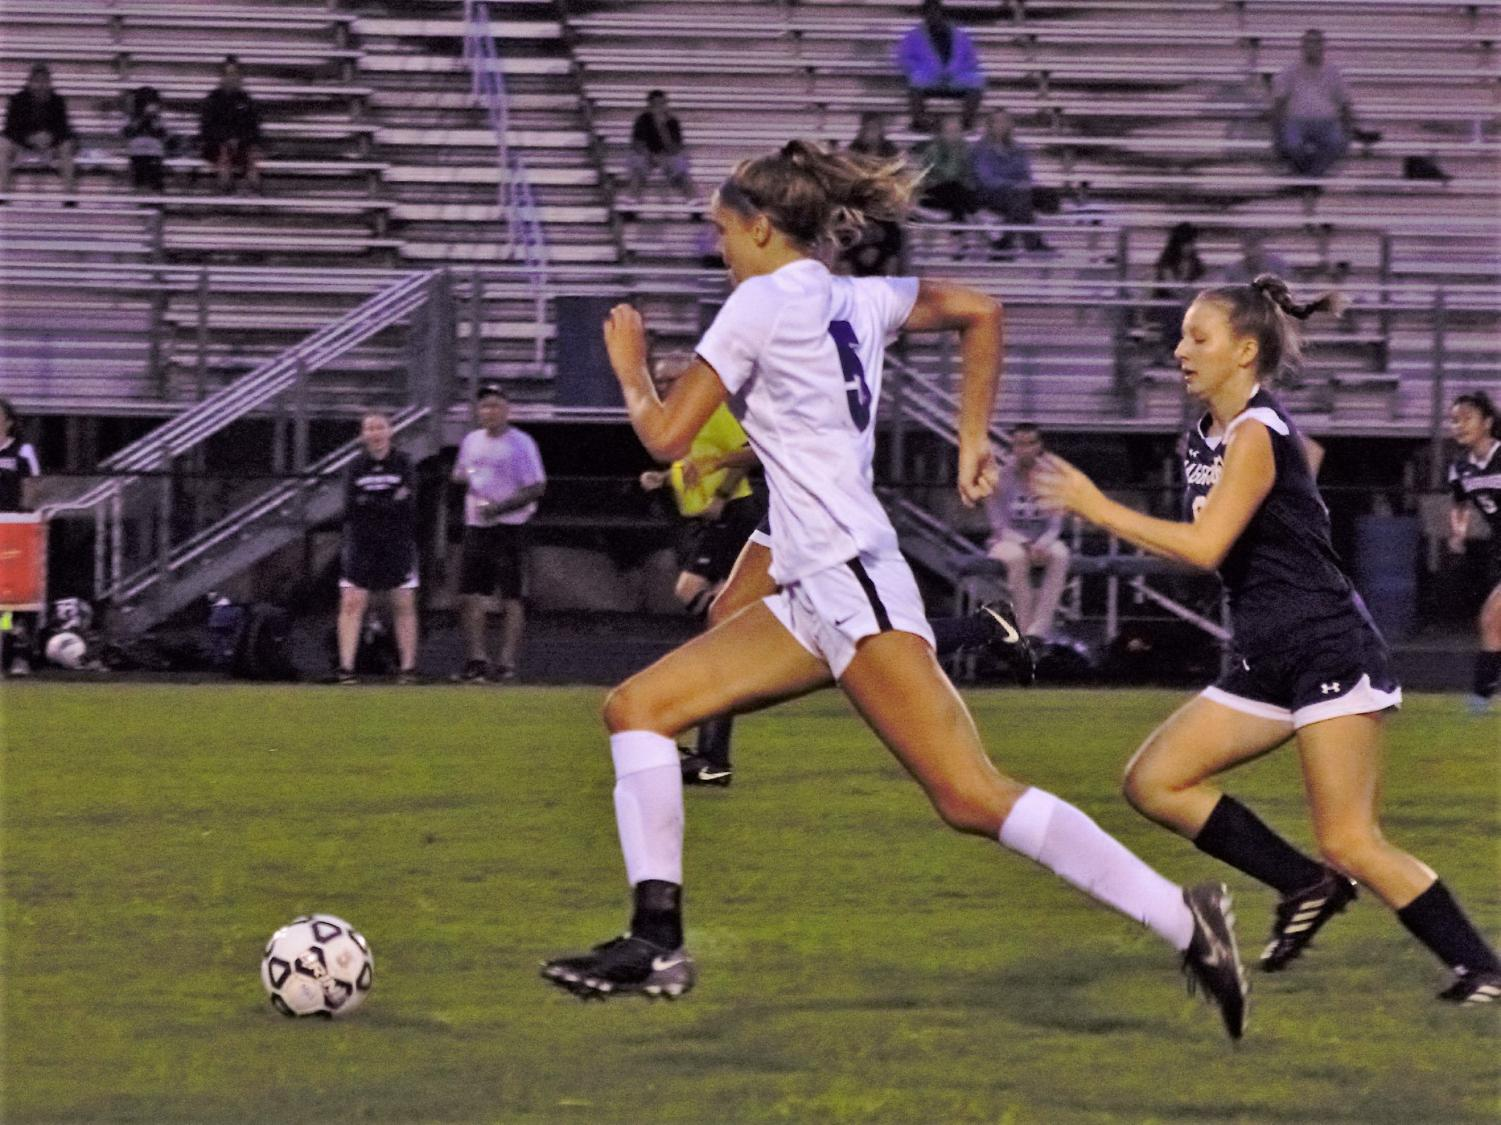 Niamh Haynos dribbles the ball down the field.